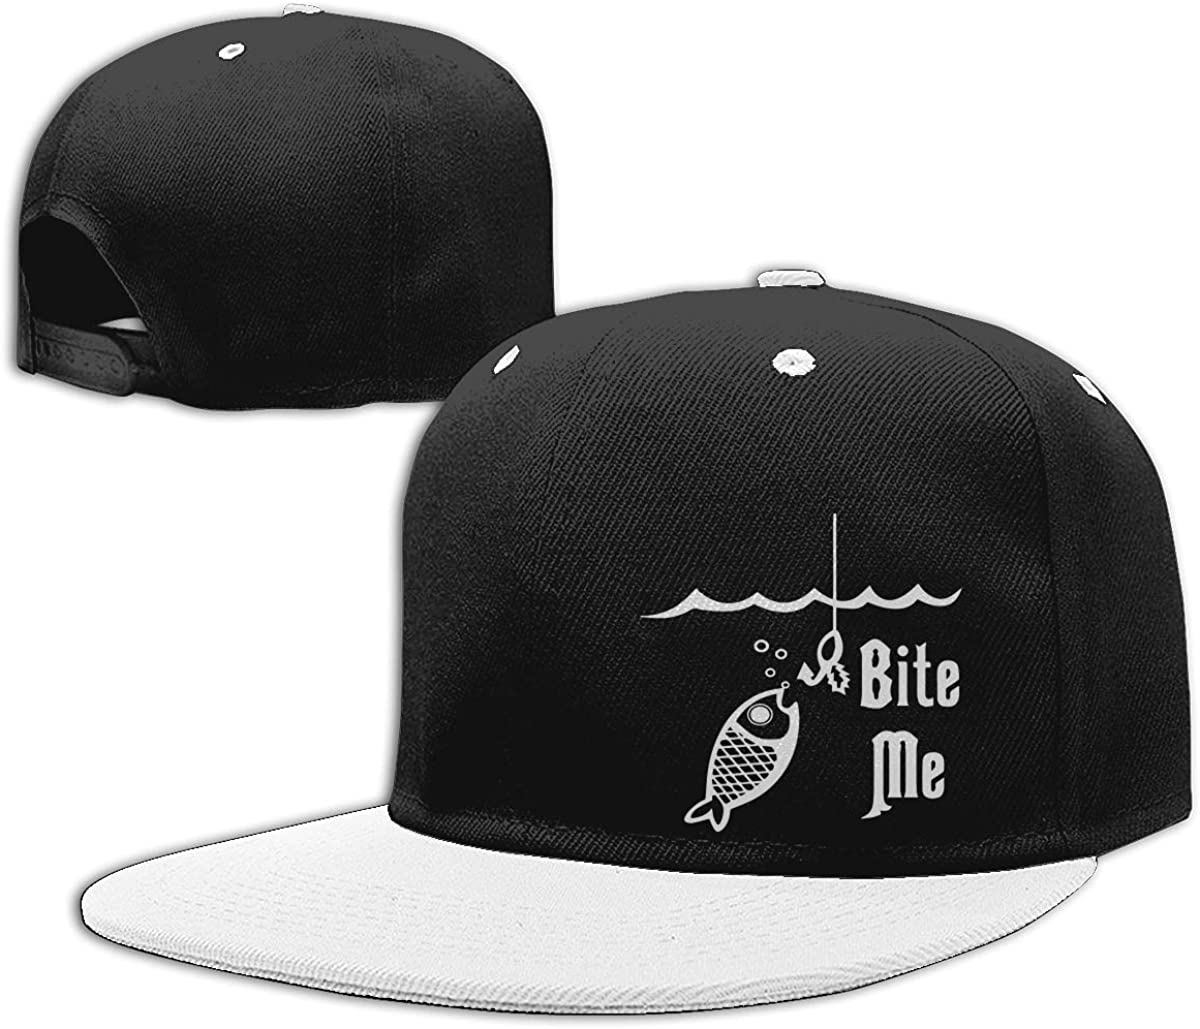 Bite Me Fish Hook Fishing Printed Flat Peaked Baseball Caps NMG-01 Men Womens Trucker Cap